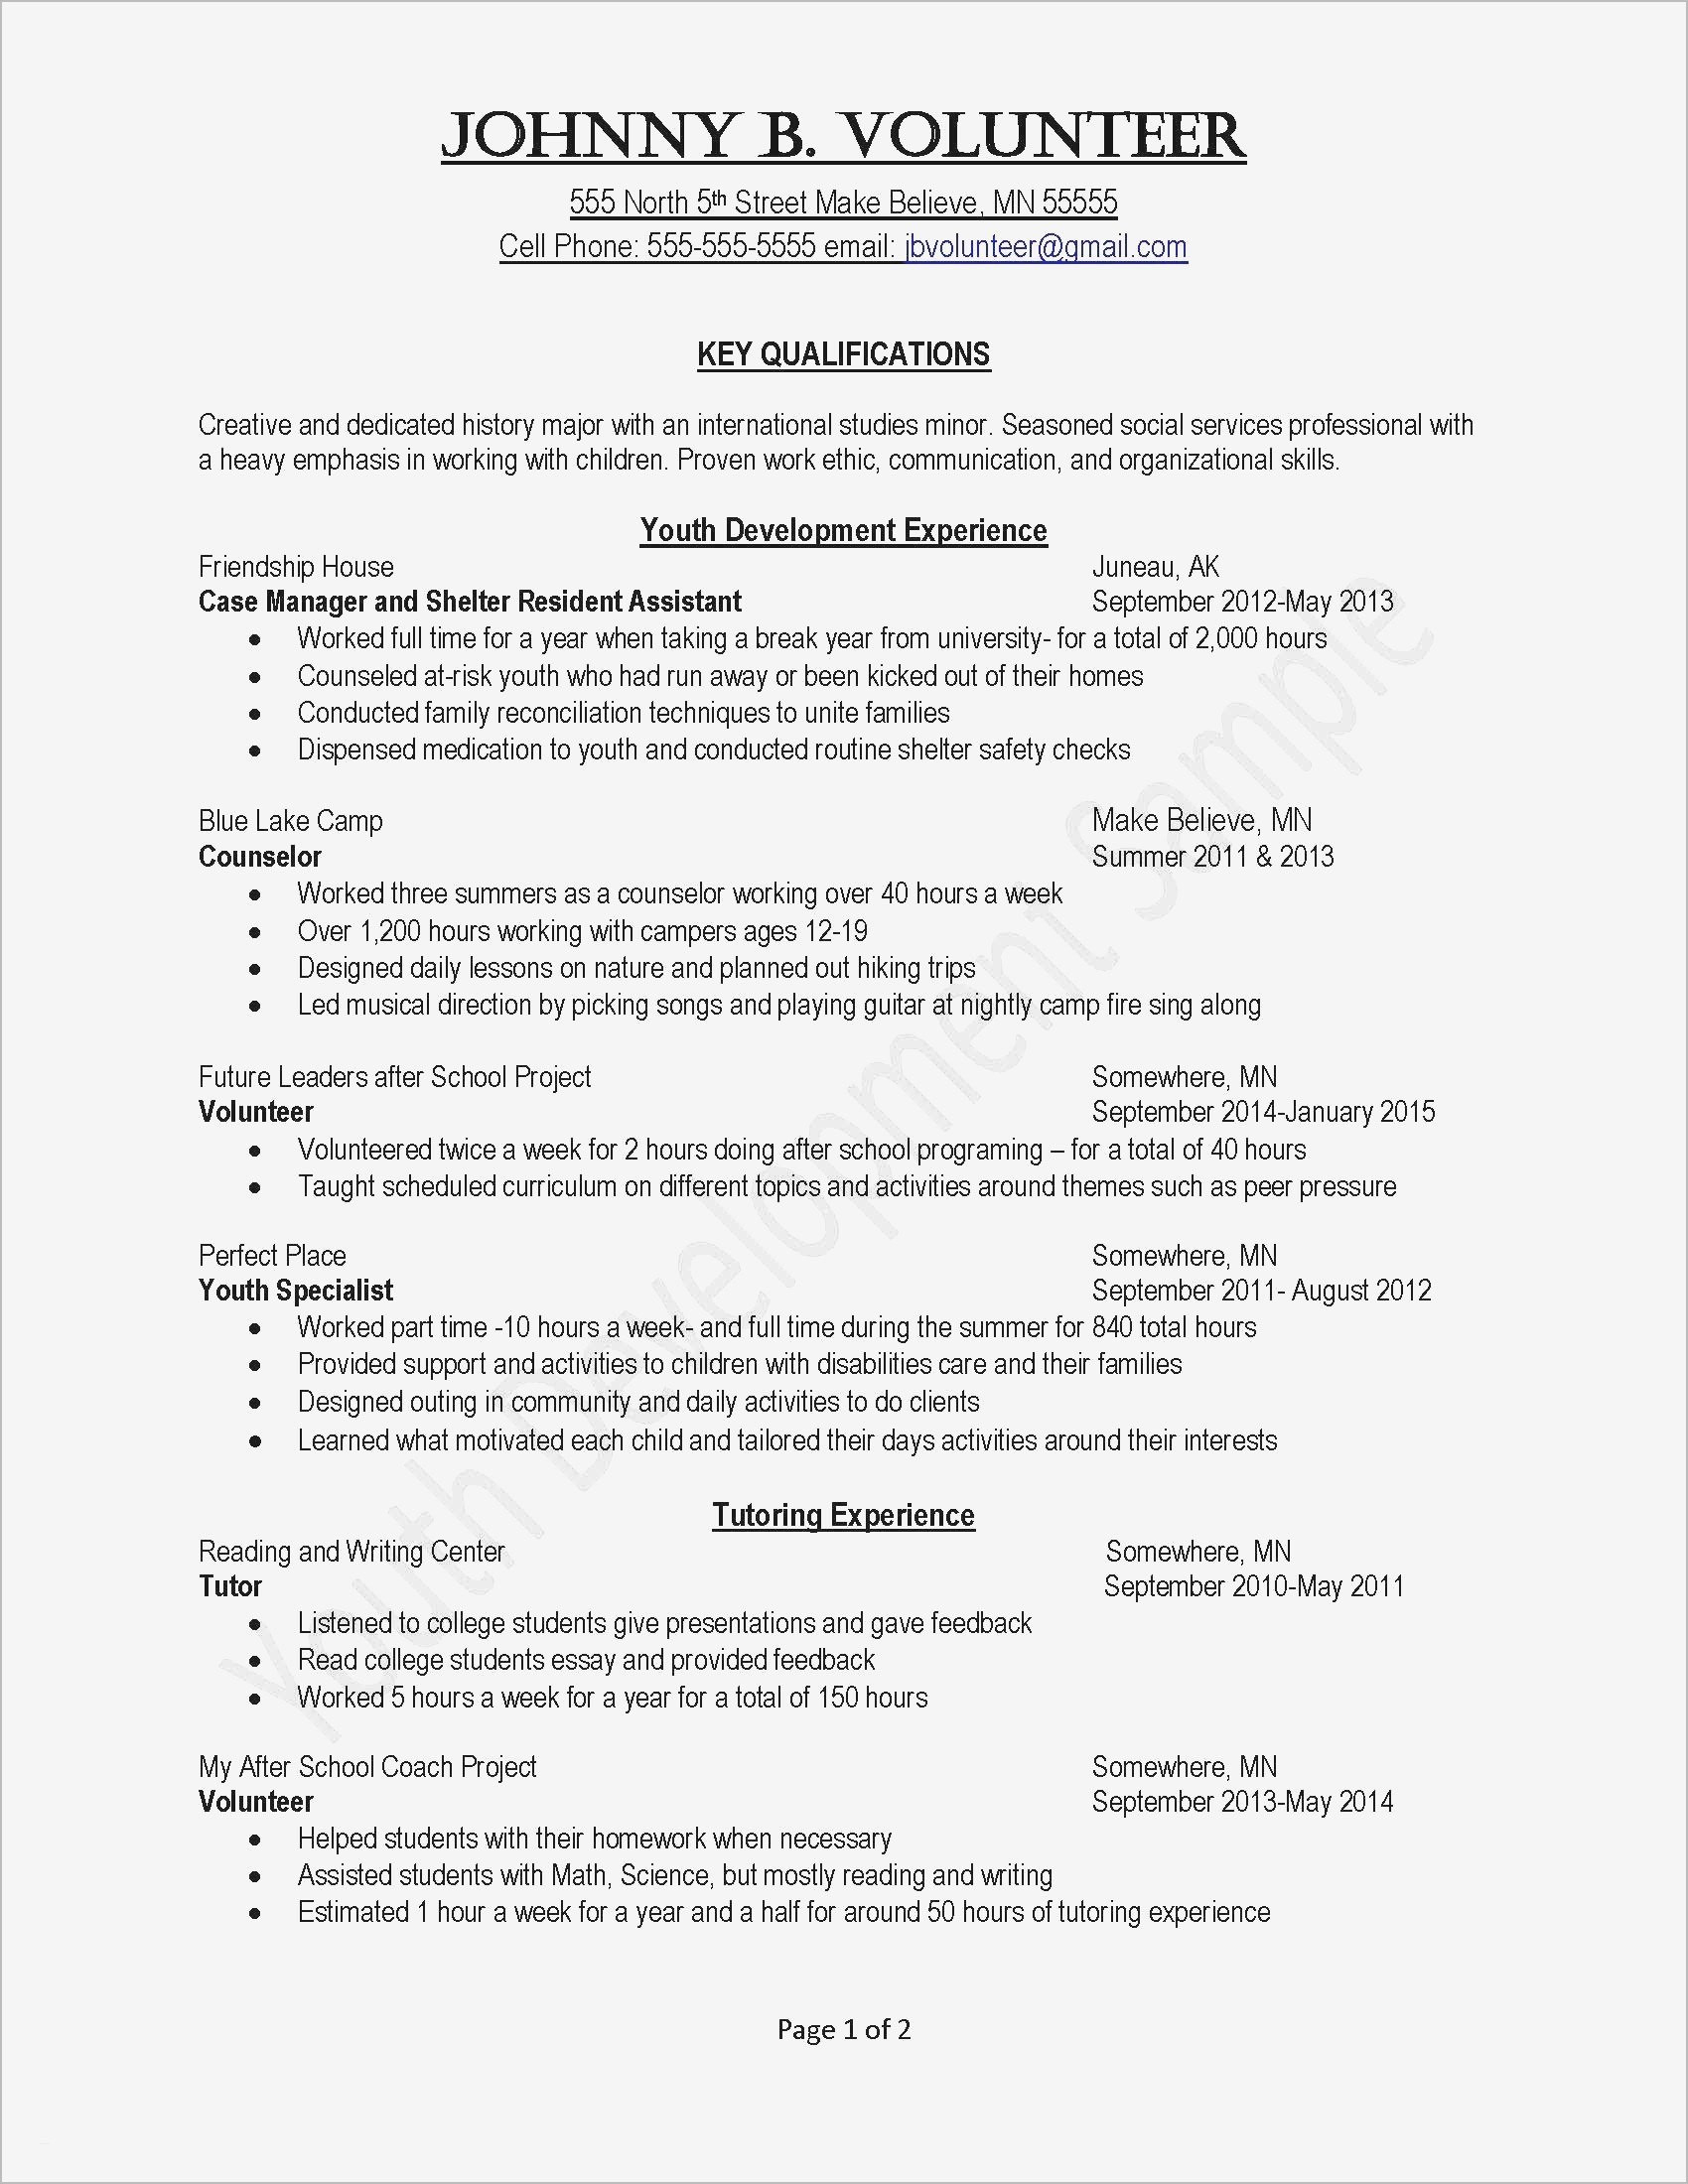 Sample Letter Template - 1 Page Resume Templates Fresh Job Fer Letter Template Us Copy Od